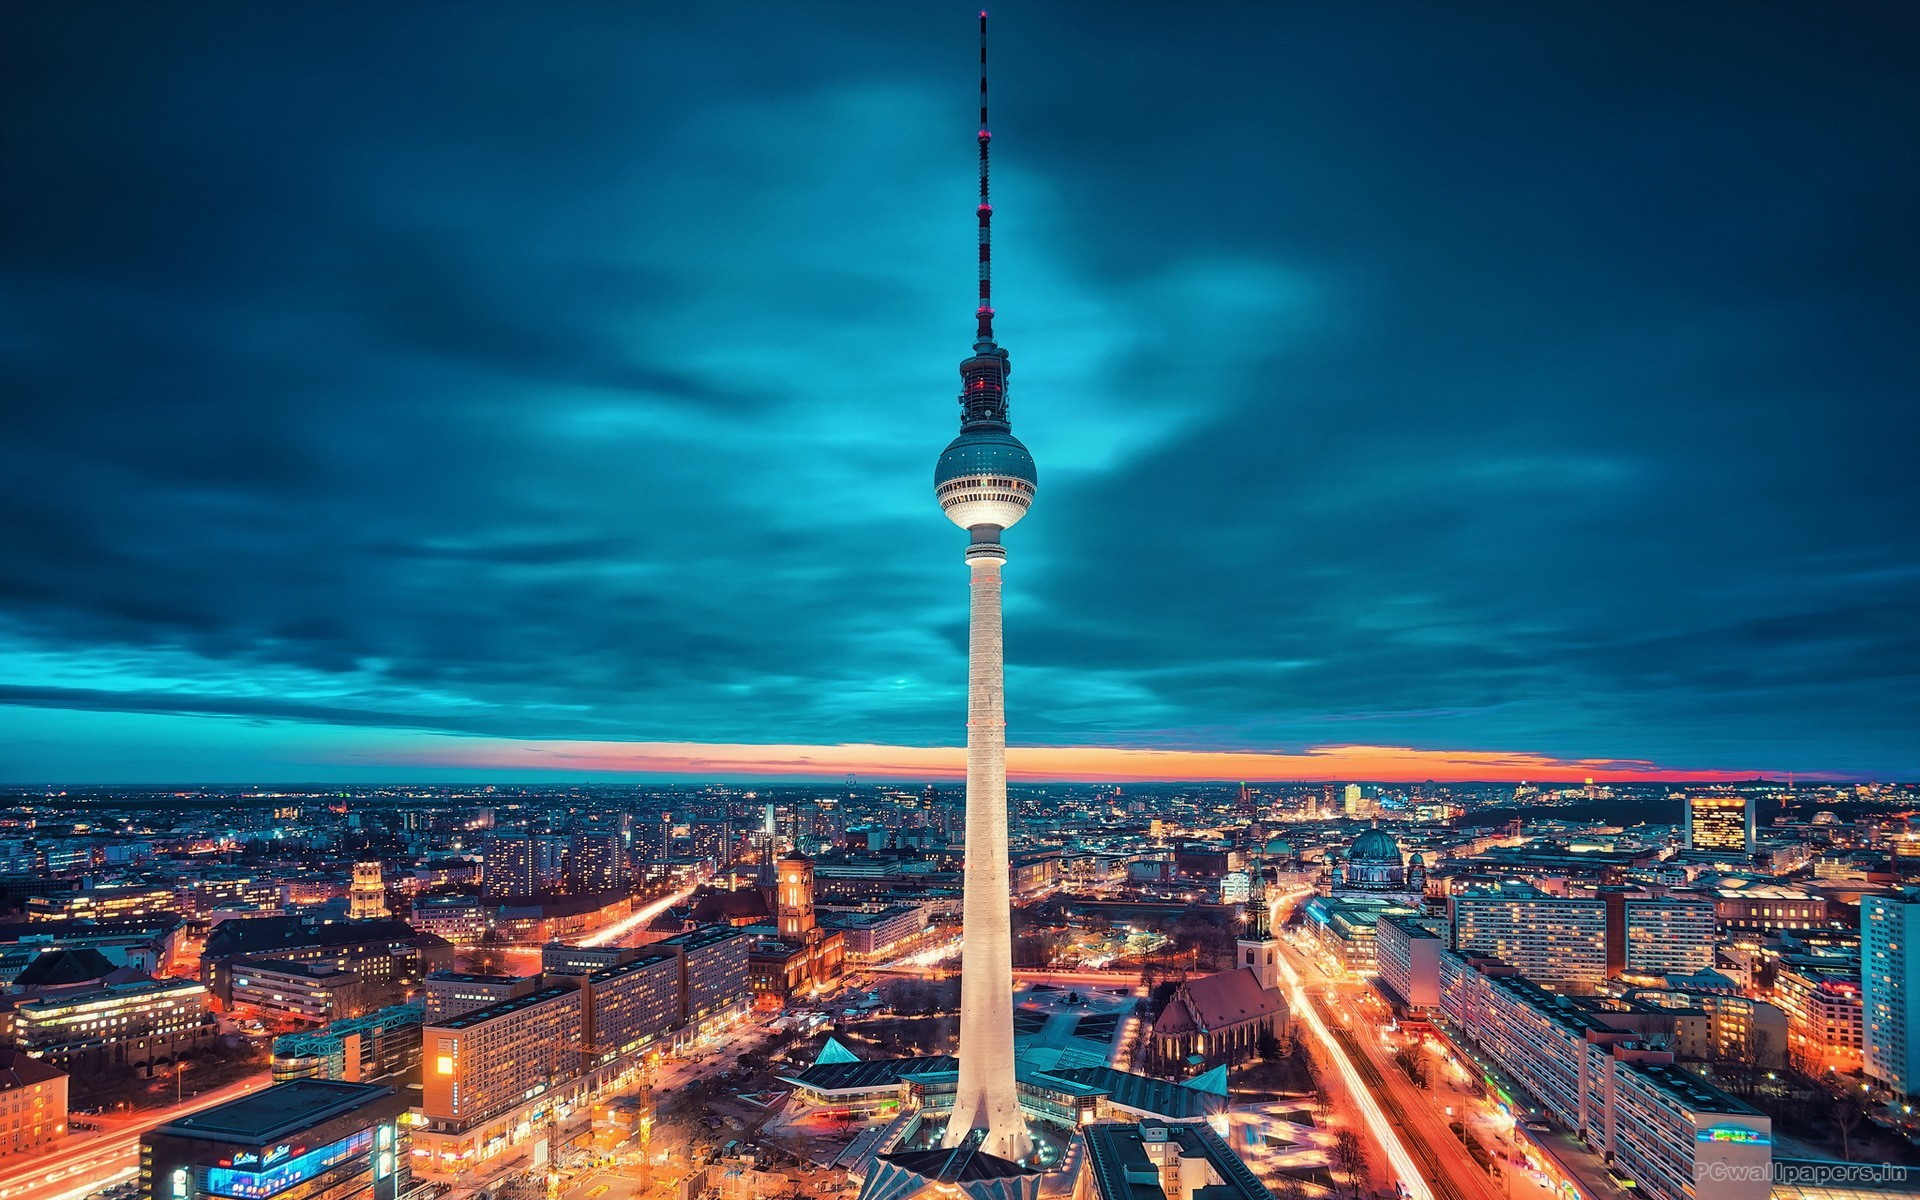 Berlin Television Tower (Fernsehturm), Things to do in Berlin – Germany